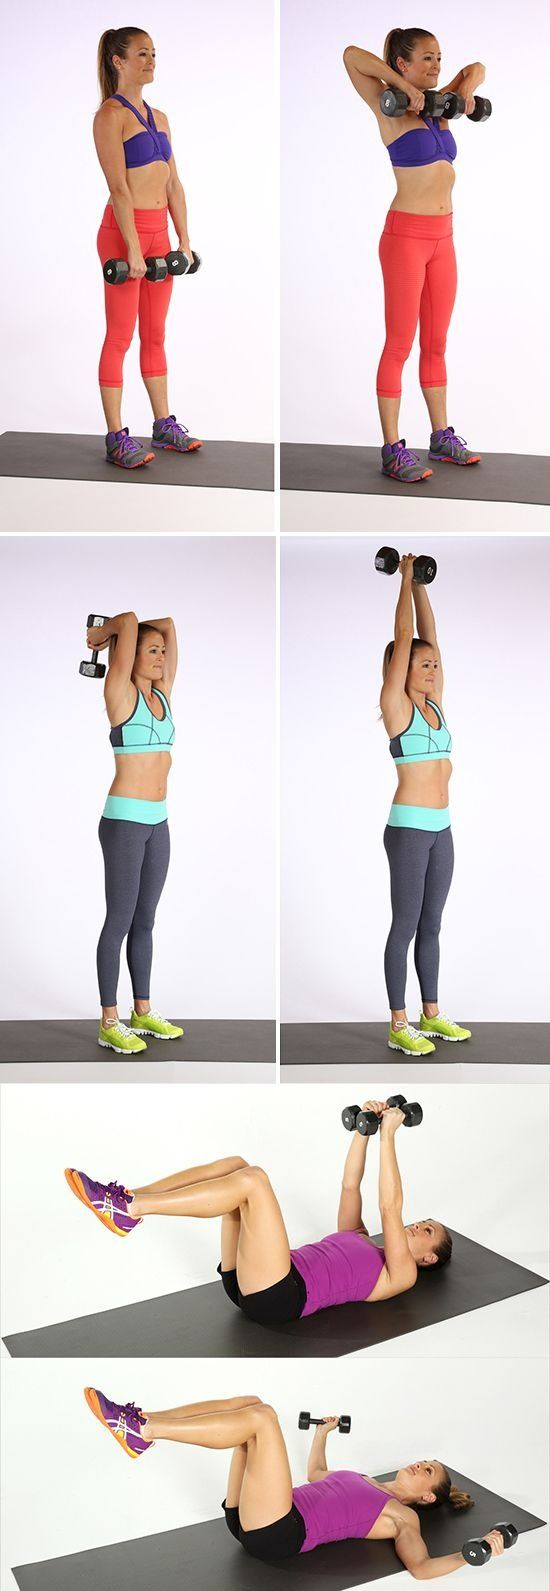 Want Strong, Chiseled Arms? Here Are 11 Dumbbell Exercises Trainers Want You to Do